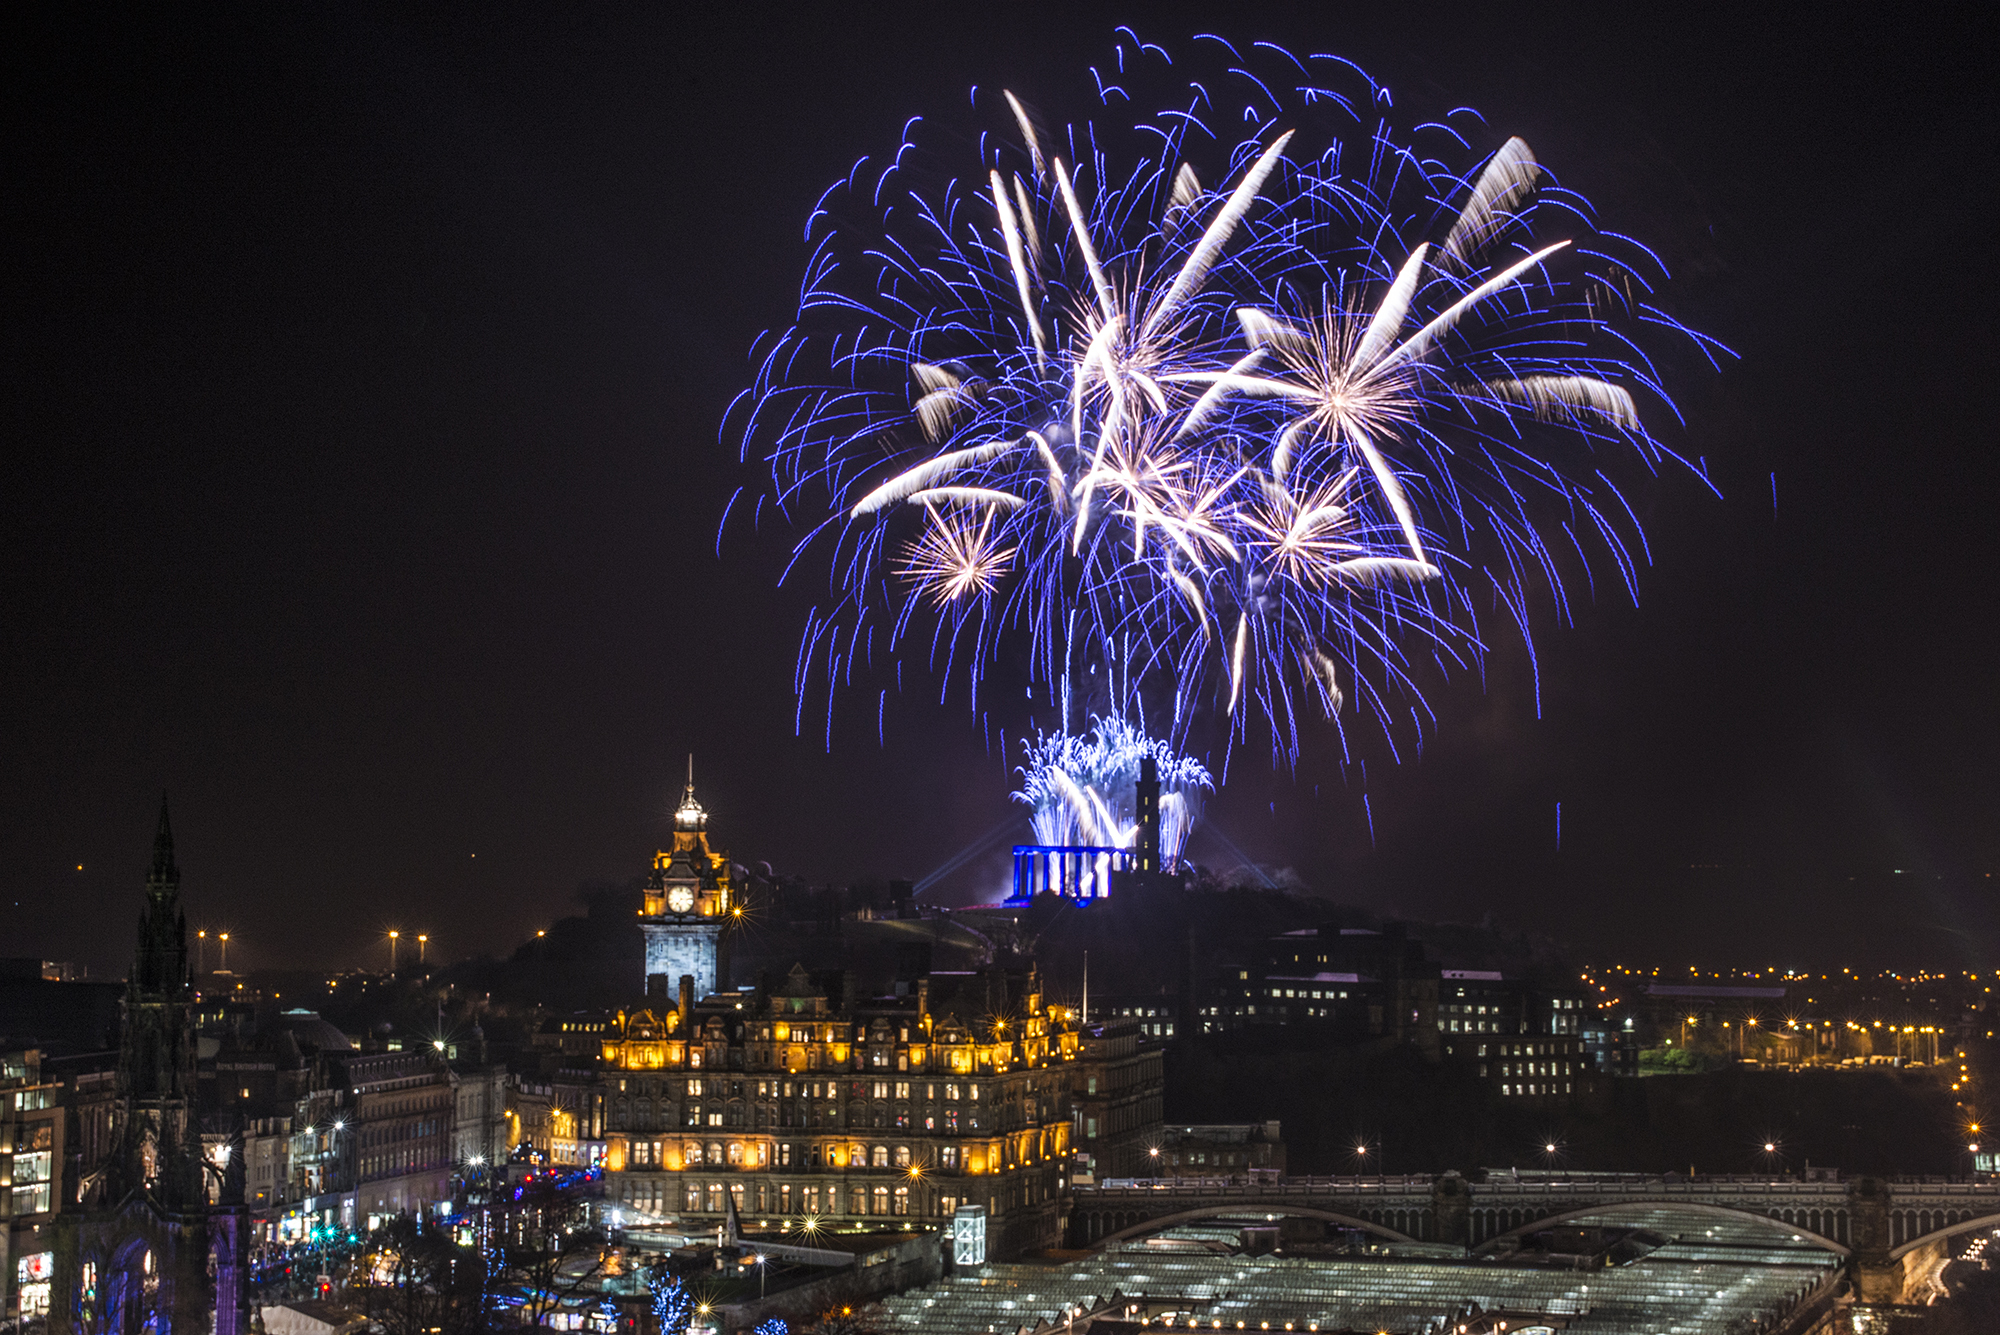 Hogmanay celebrations in Edinburgh (Grant Ritchie)